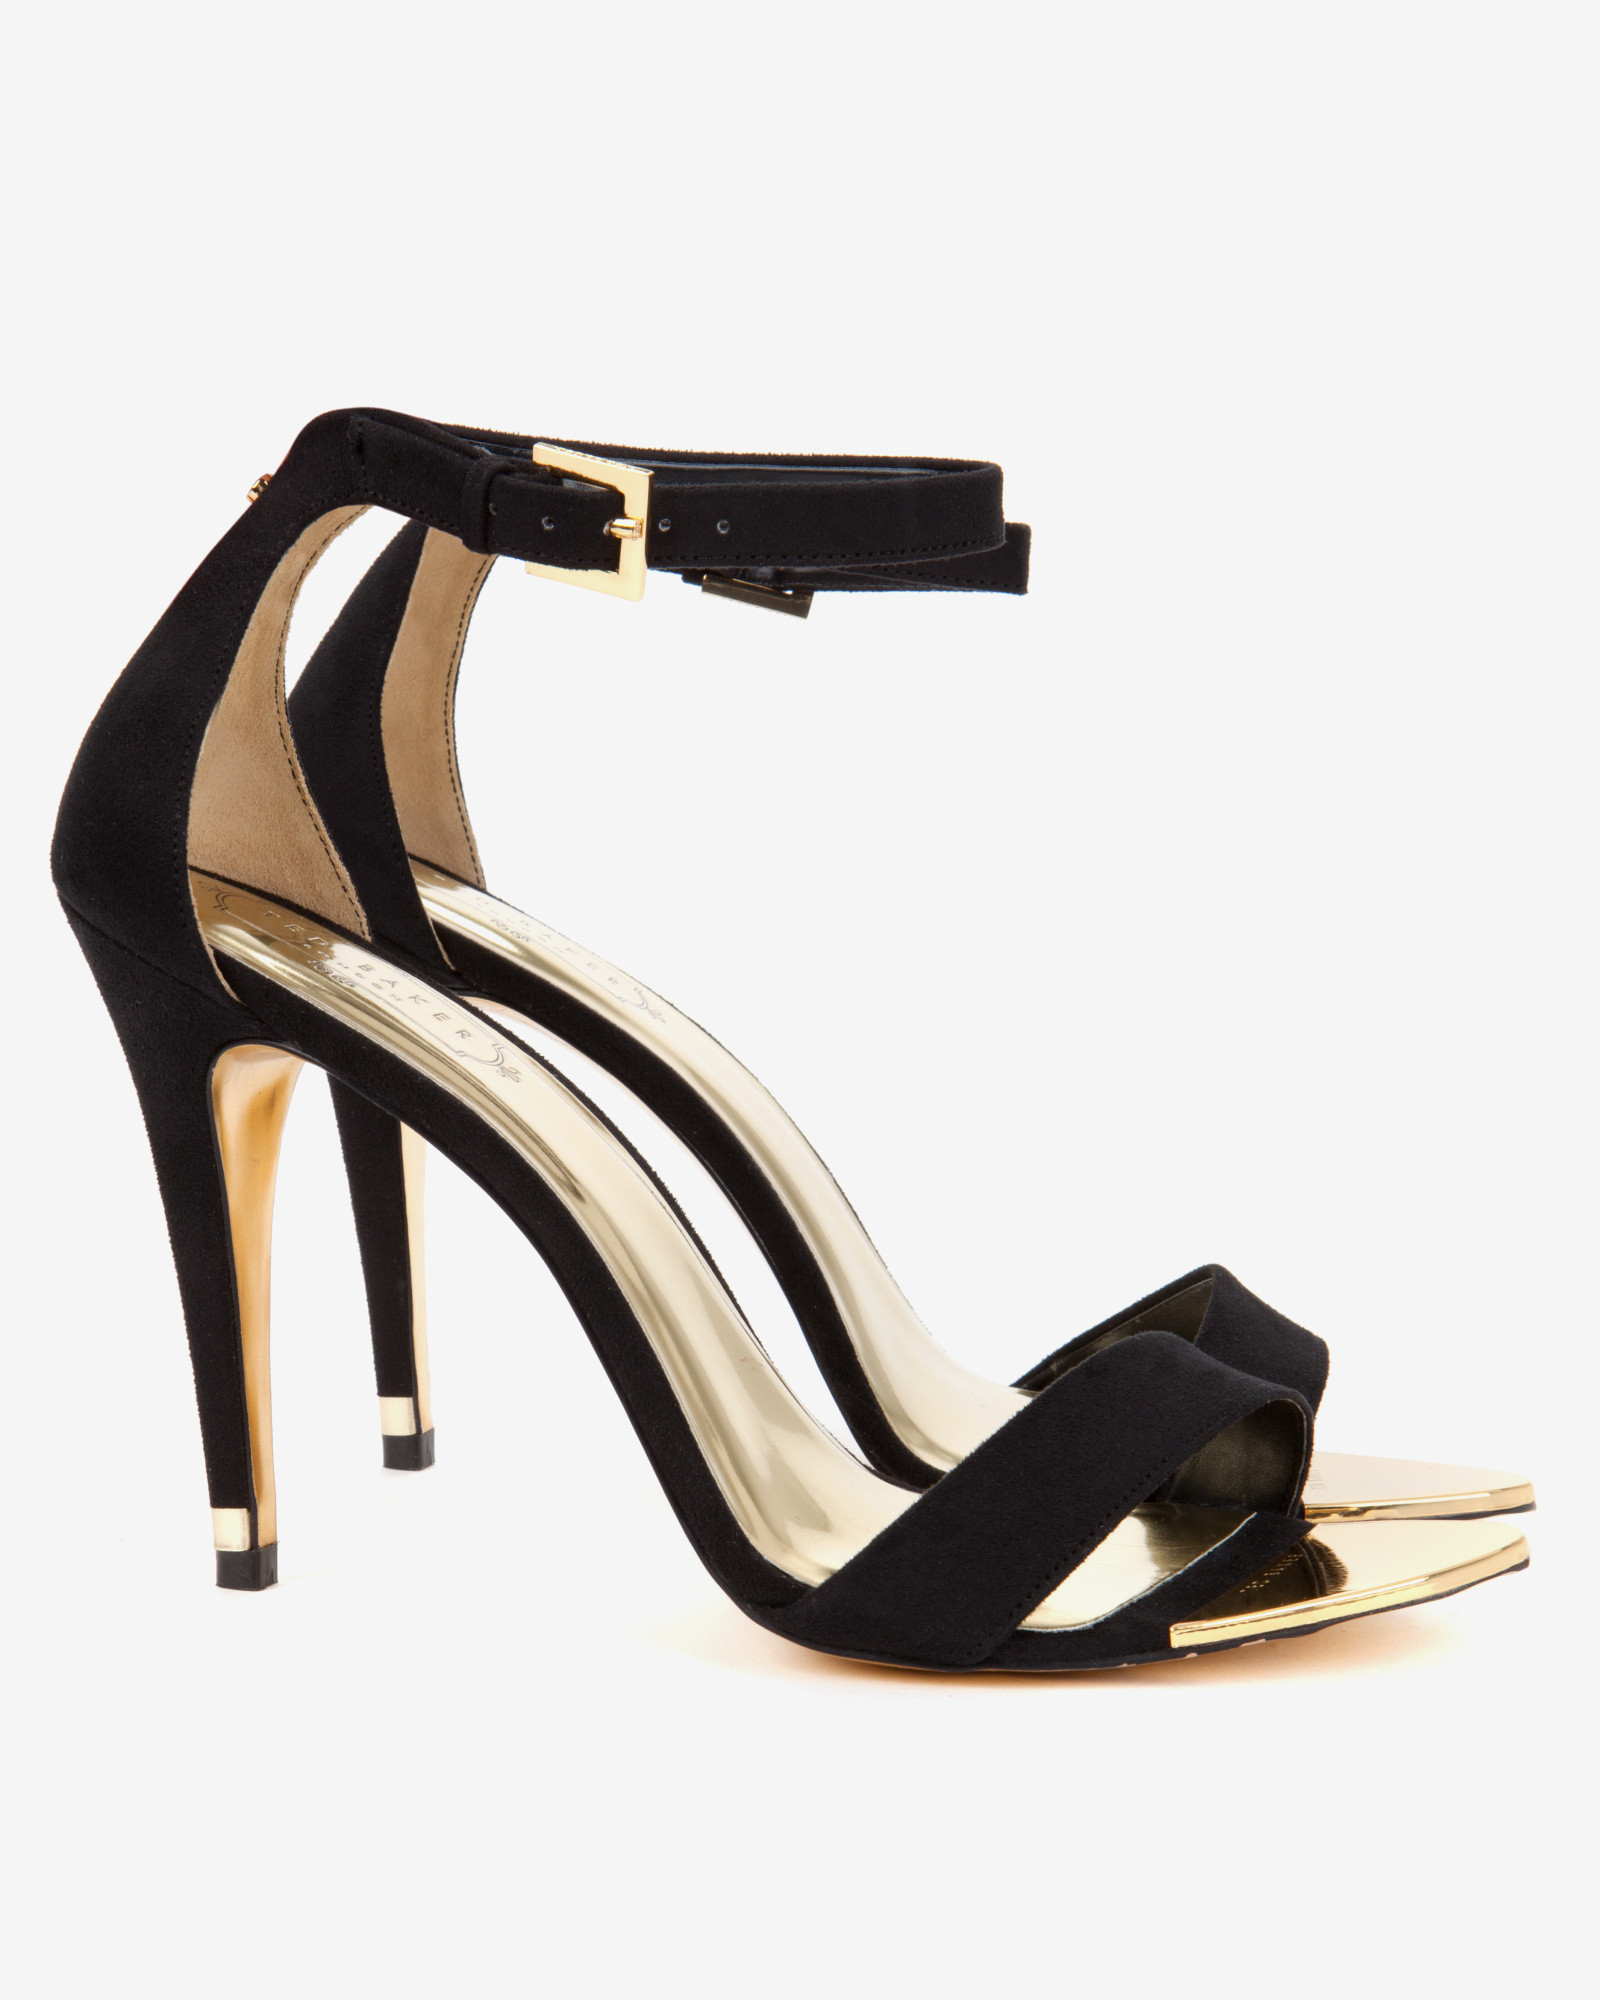 Ted baker Ankle Strap Sandals in Black | Lyst